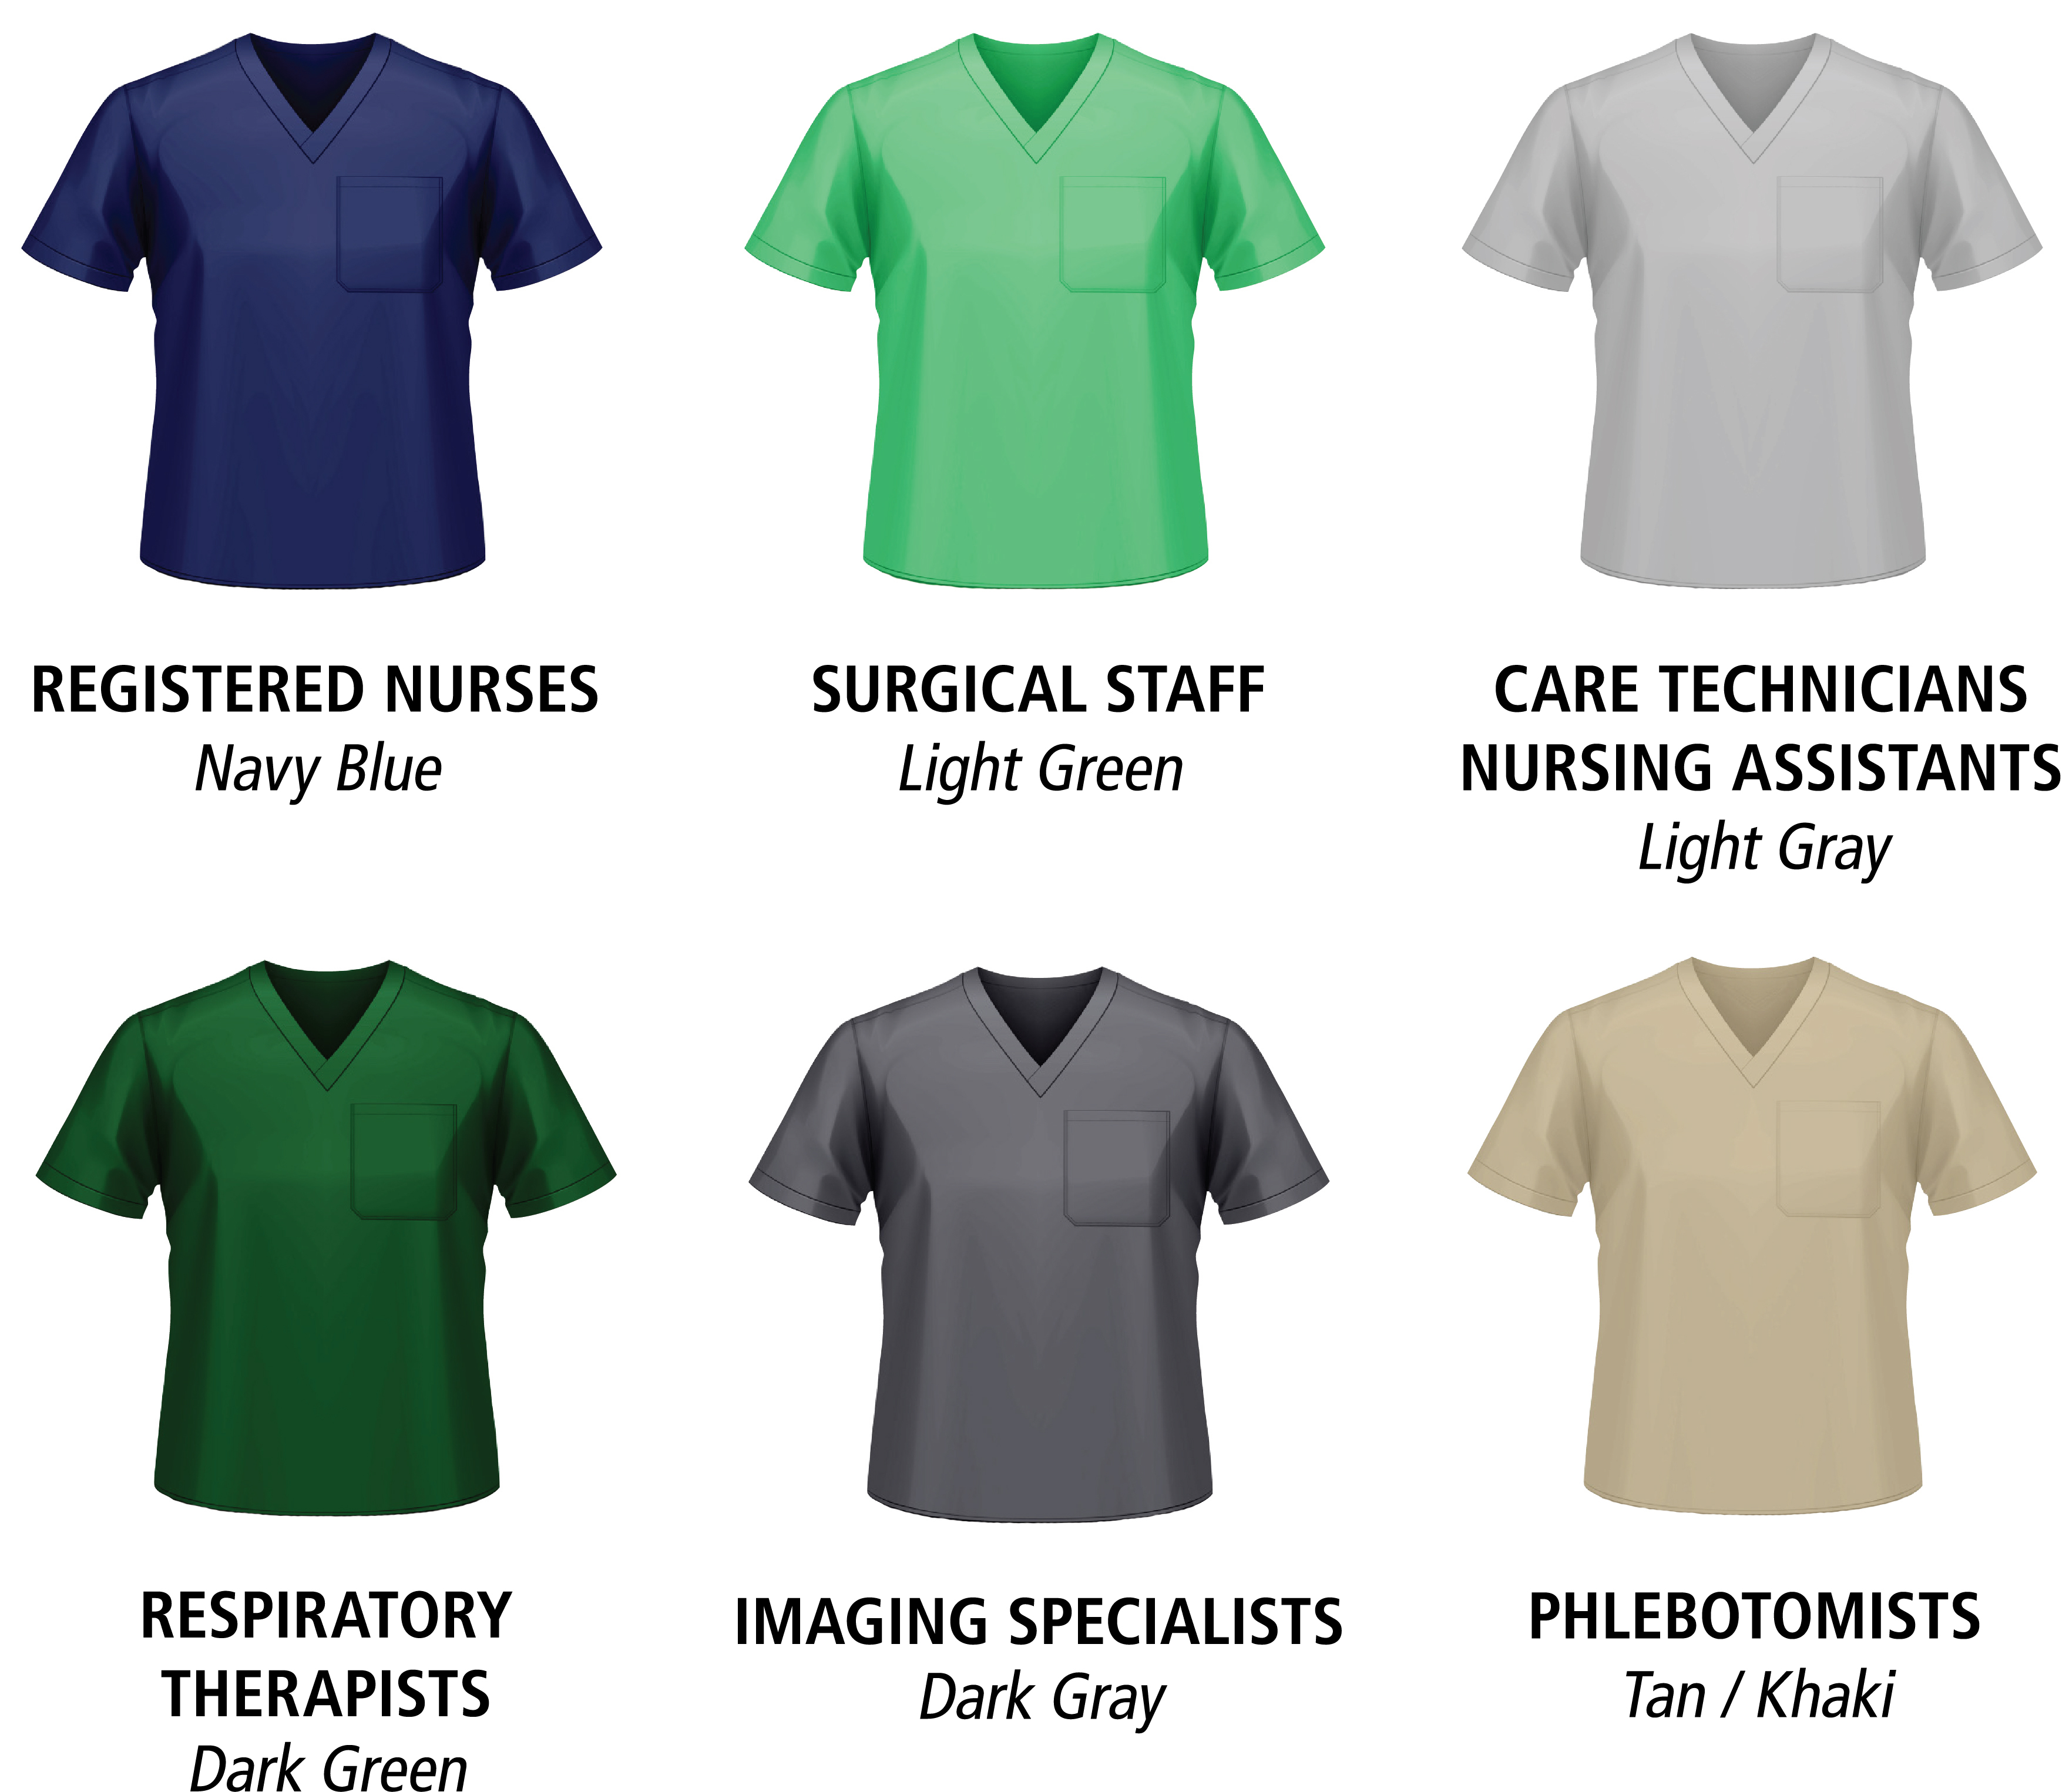 intermountain-healthcare-colors-of-care-scrubs